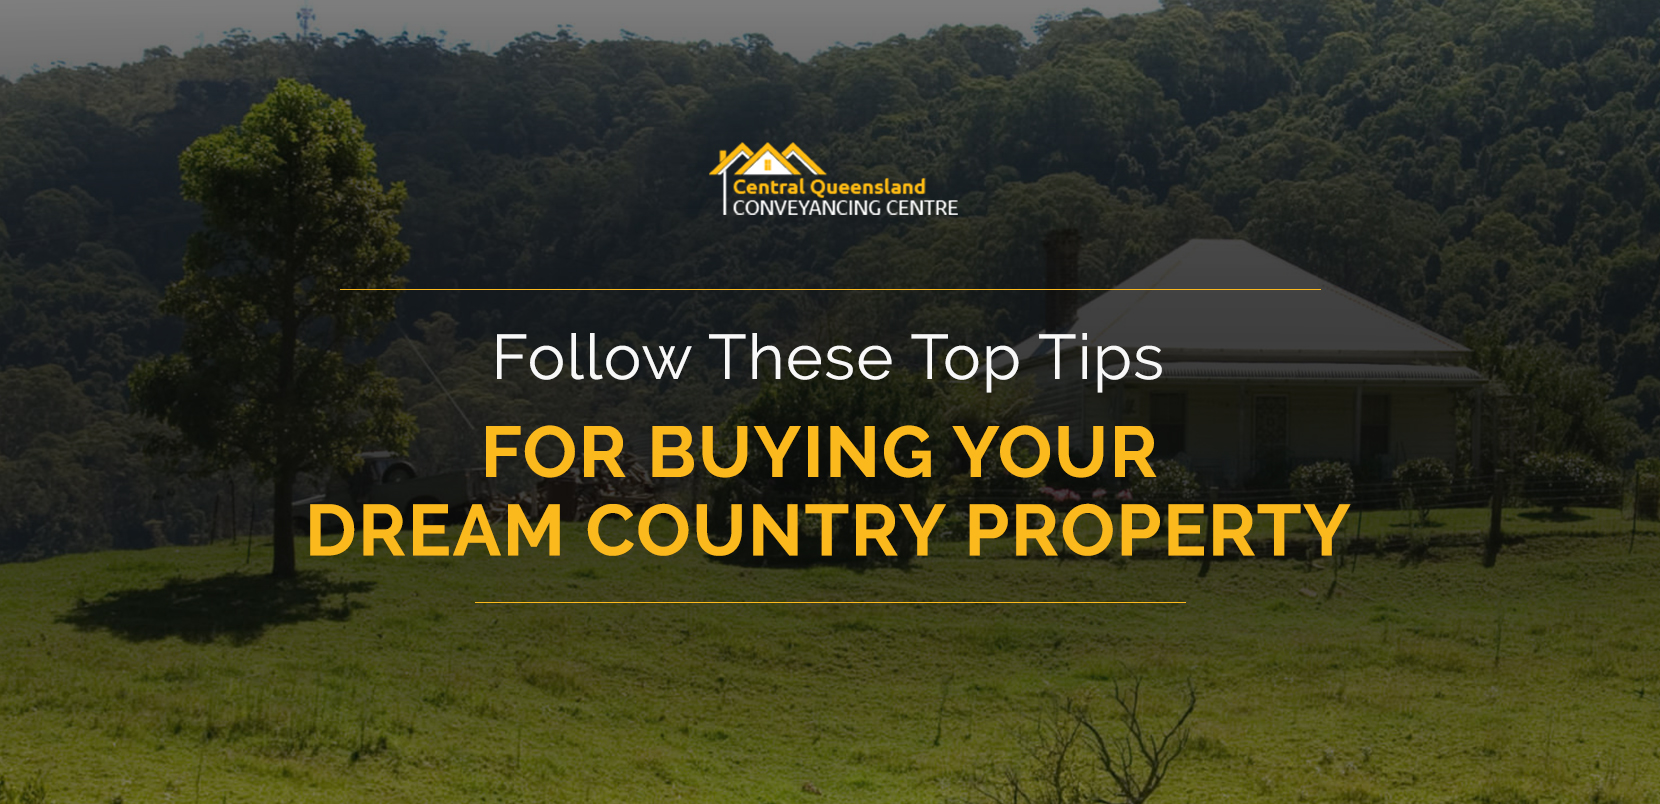 Follow These Top Tips for Buying Your Dream Country Property